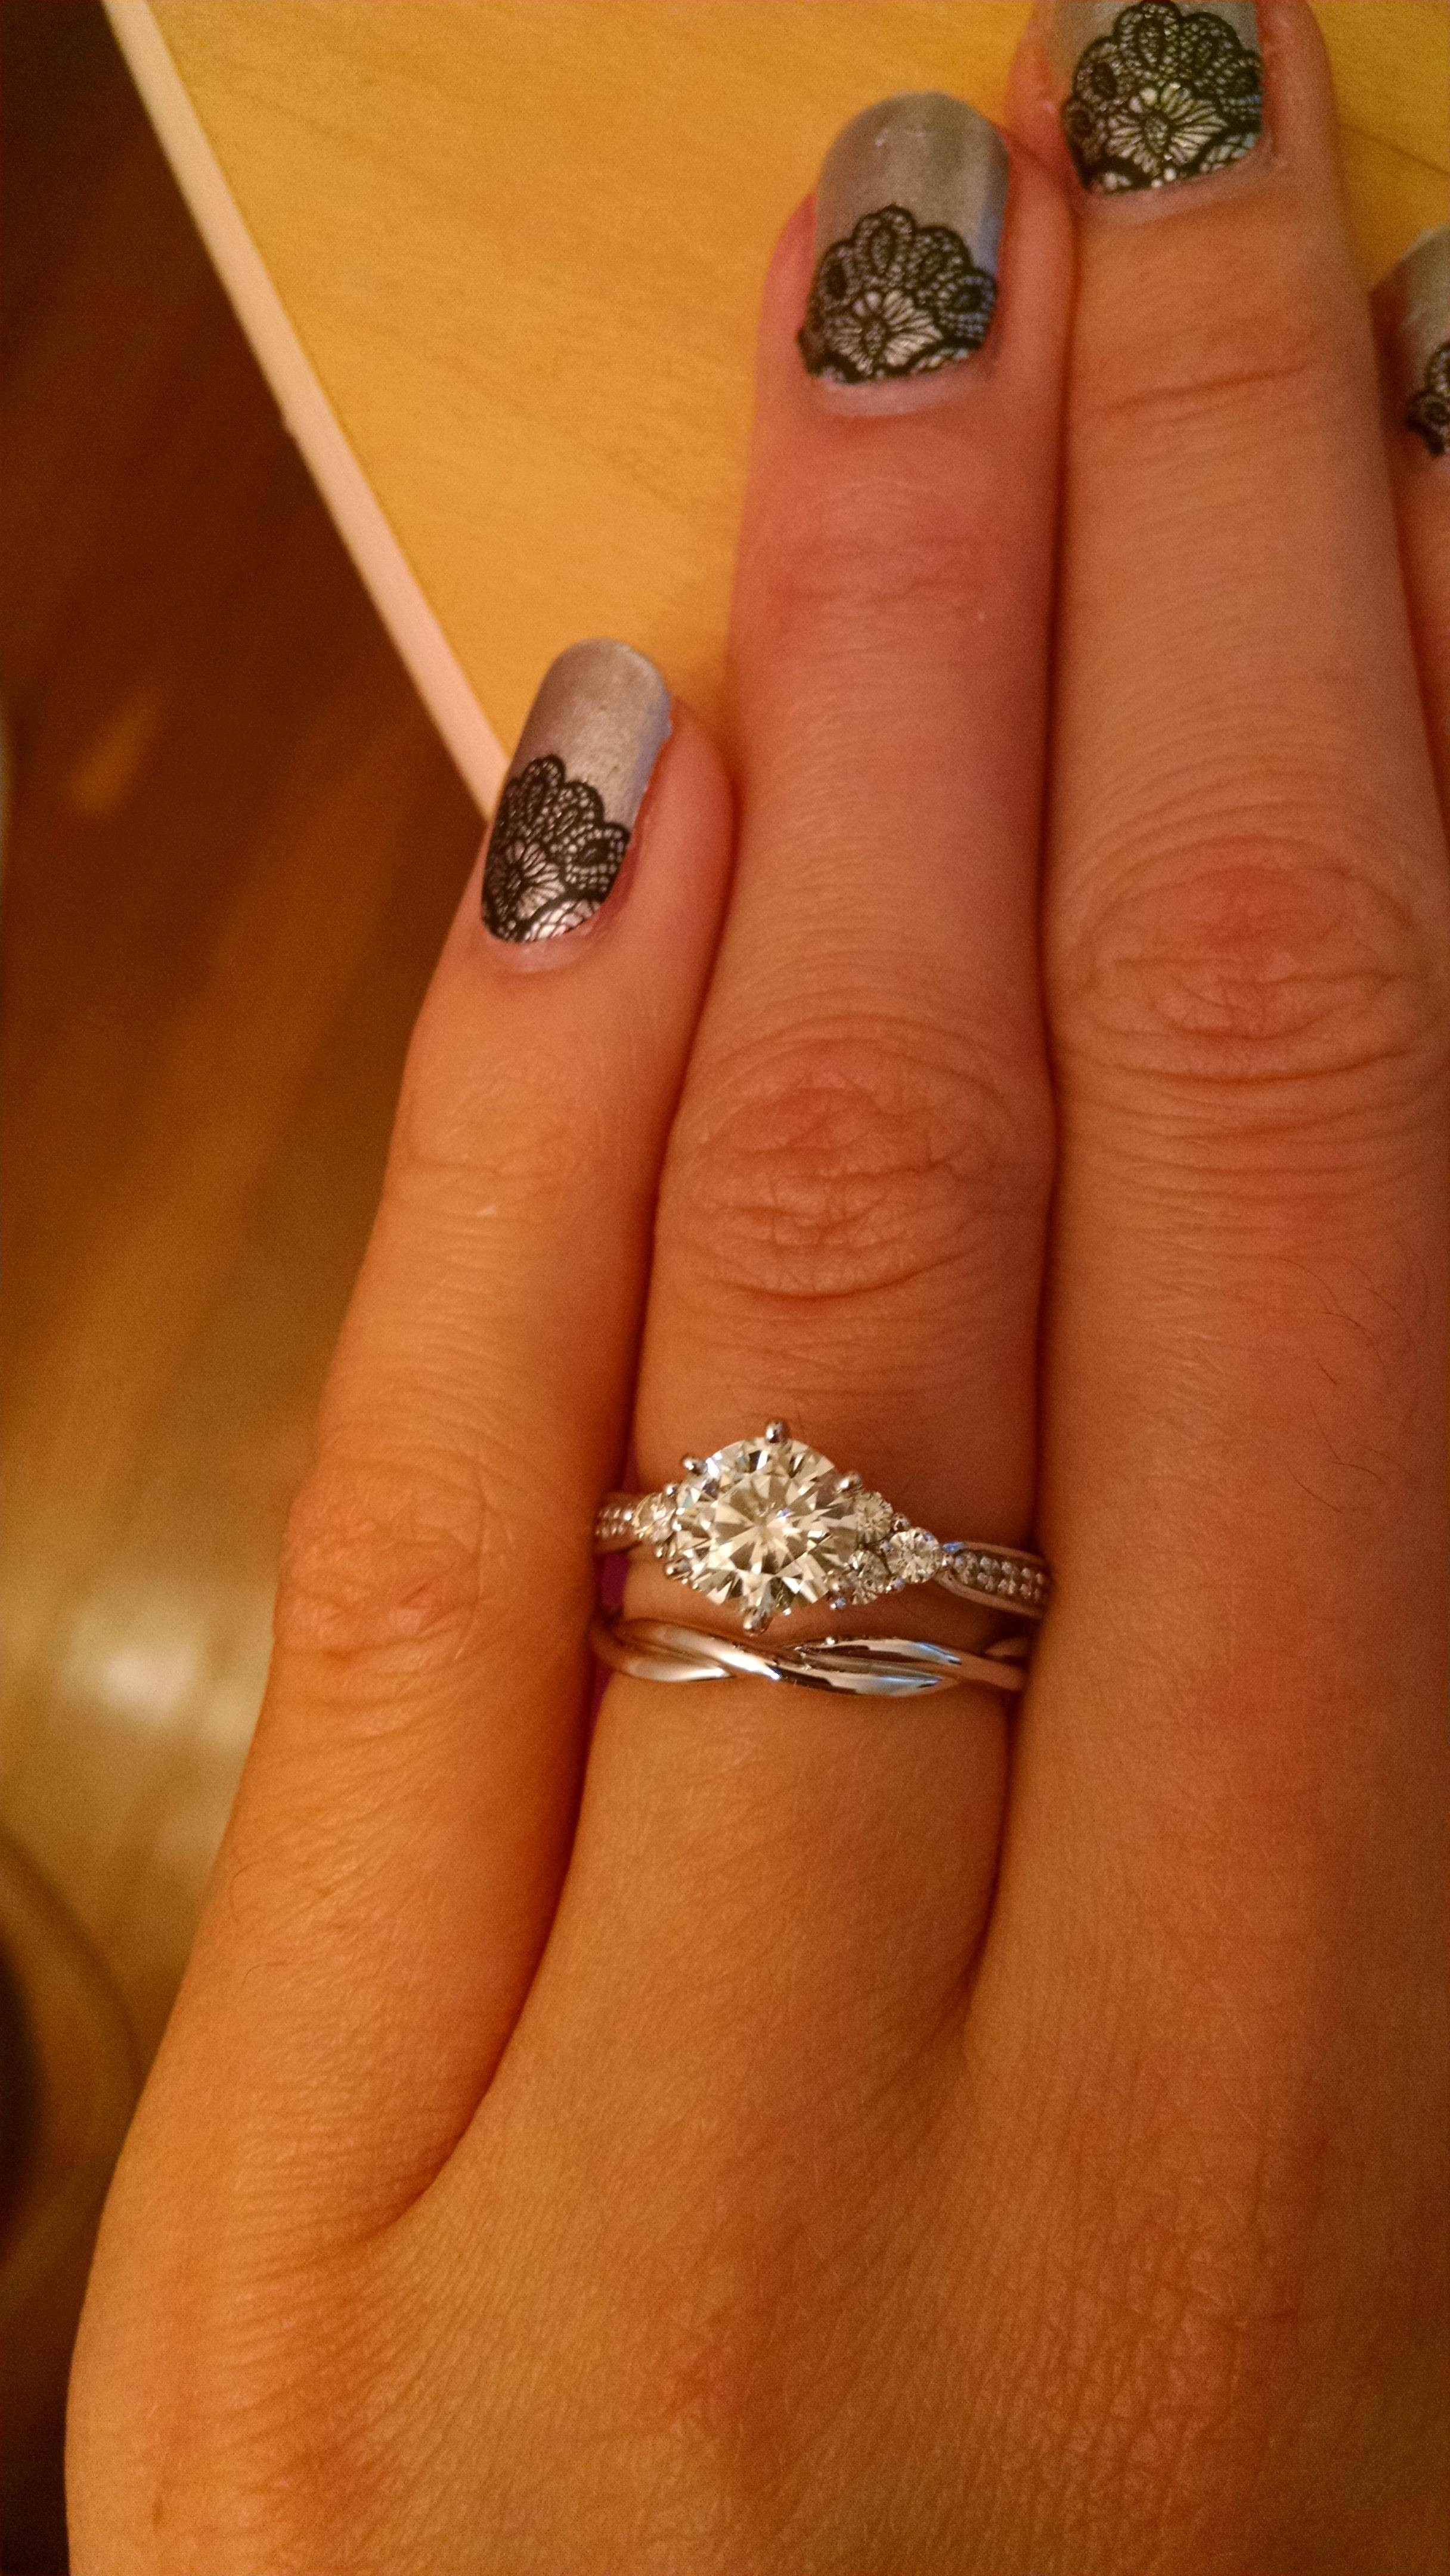 Wedding Bands For Twisted Engagement Rings! : Weddingplanning Inside Wedding Bands For Twisted Engagement Rings (View 14 of 15)